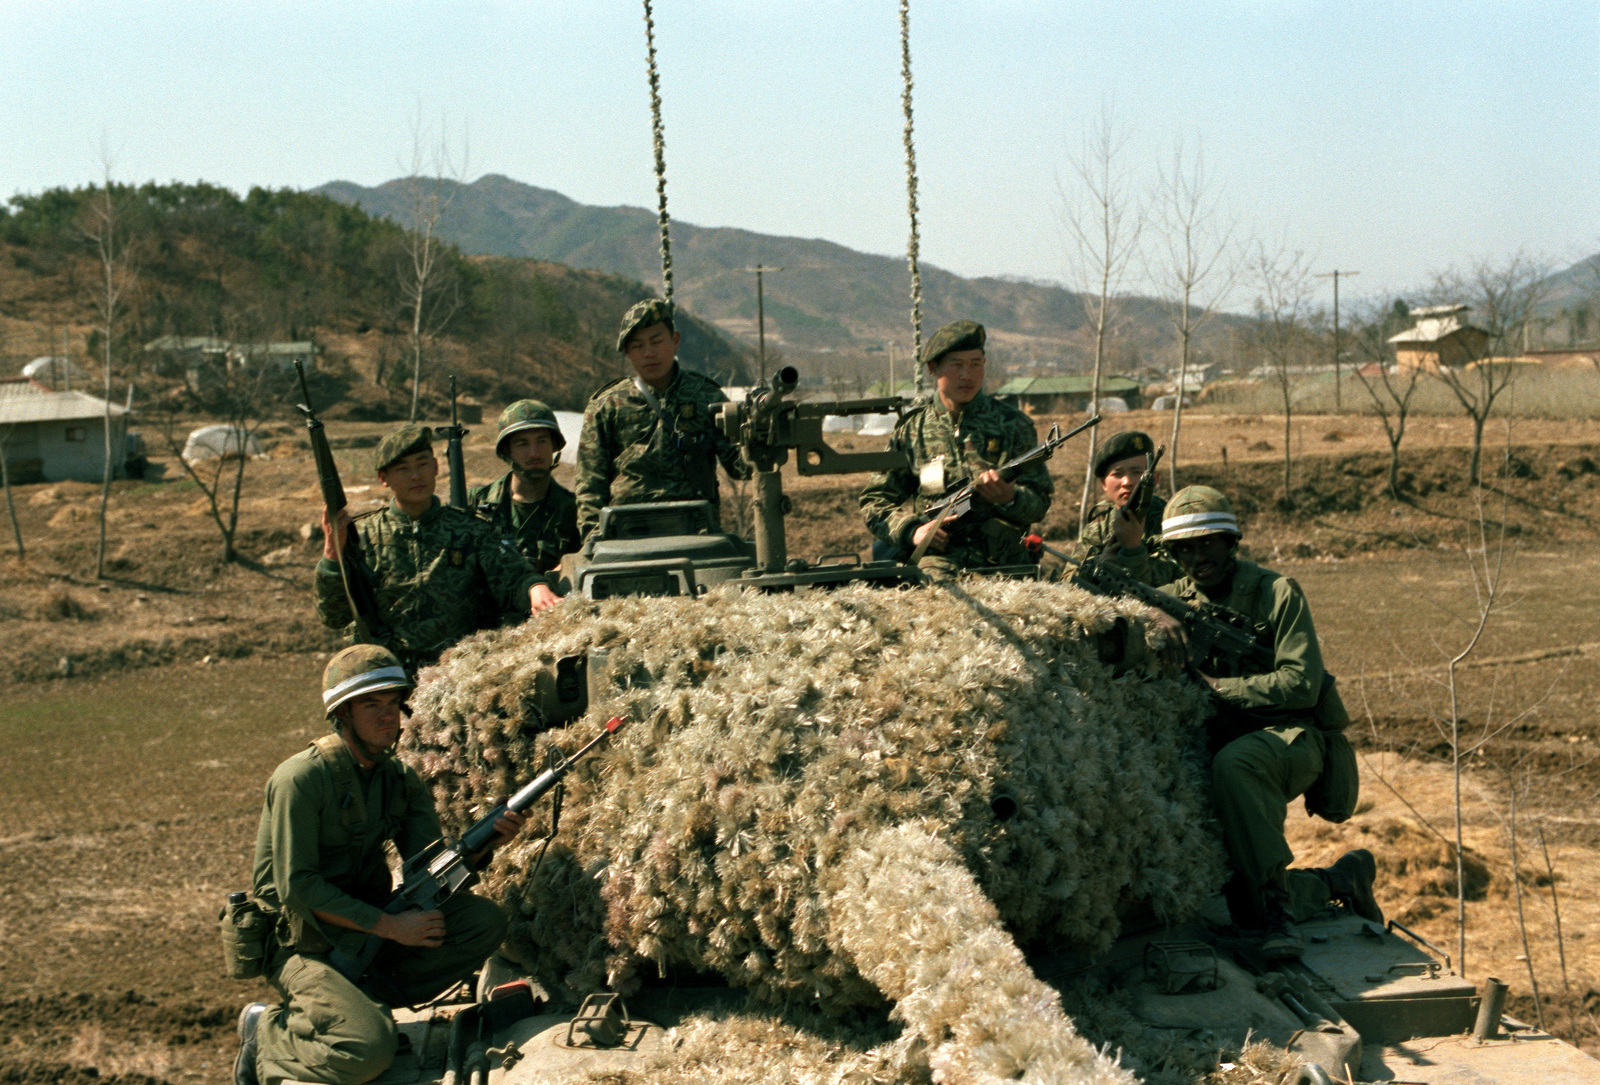 Members of the 25th Infantry Division from Schofield Barracks, Hawaii, and members of the 2nd Republic of Korea Army Tank Battalion, stand by with an M-47 tank to defend against aggressor action from the Orange Forces. The U.S. and Korean soldiers are acting as members of the Blue Forces during the training exercise Team Spirit '82